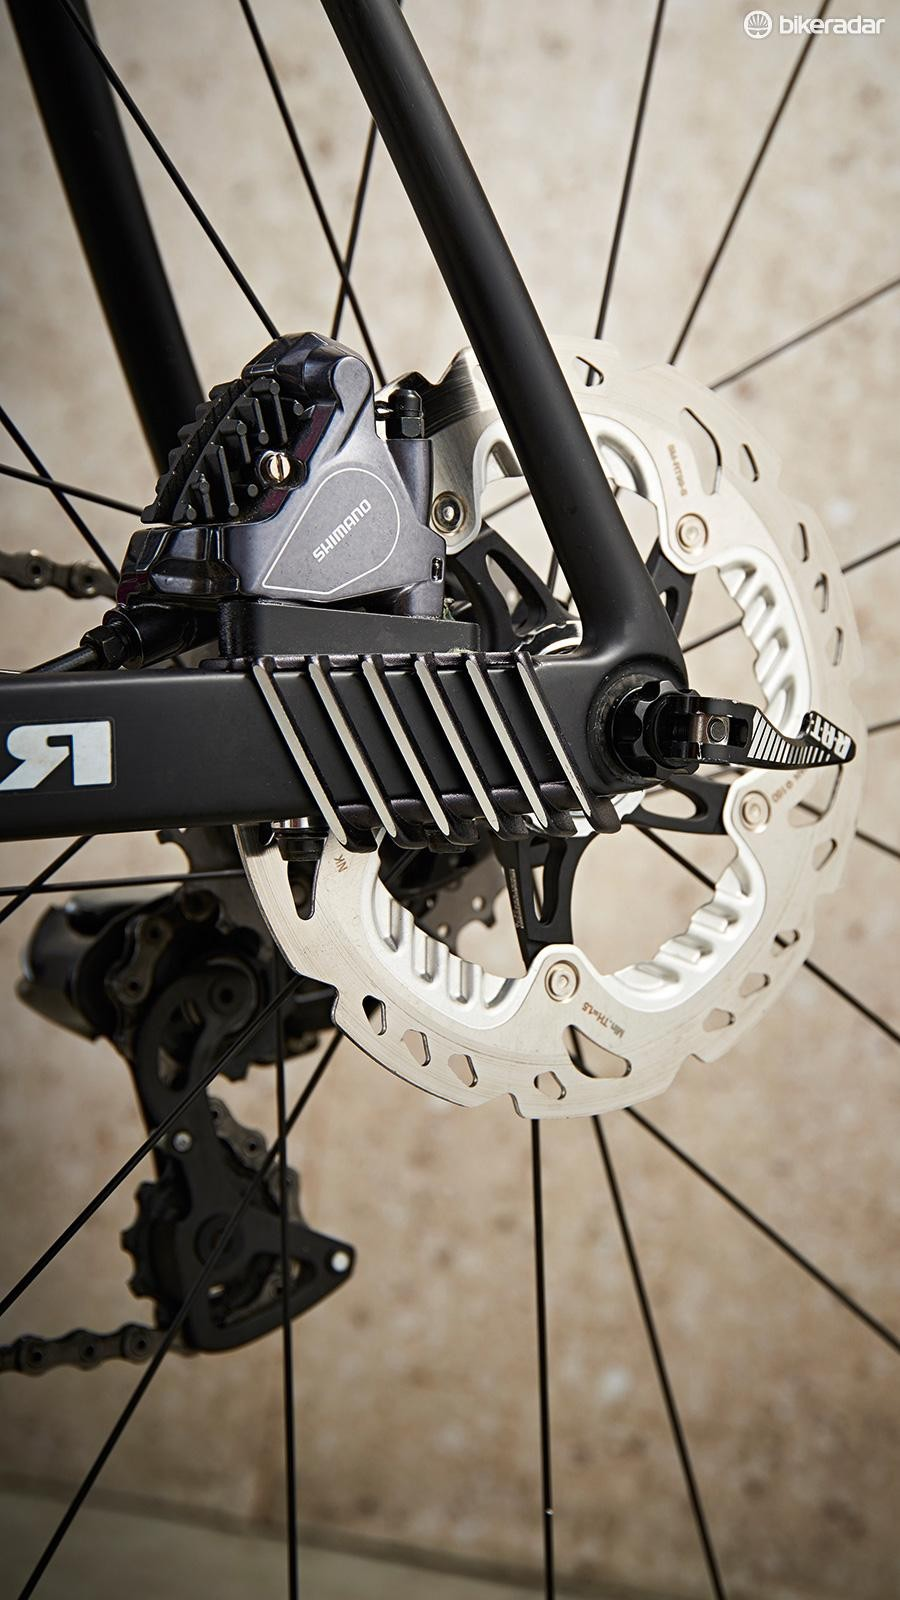 Merida claims the addition of disc fins cools things down quicker